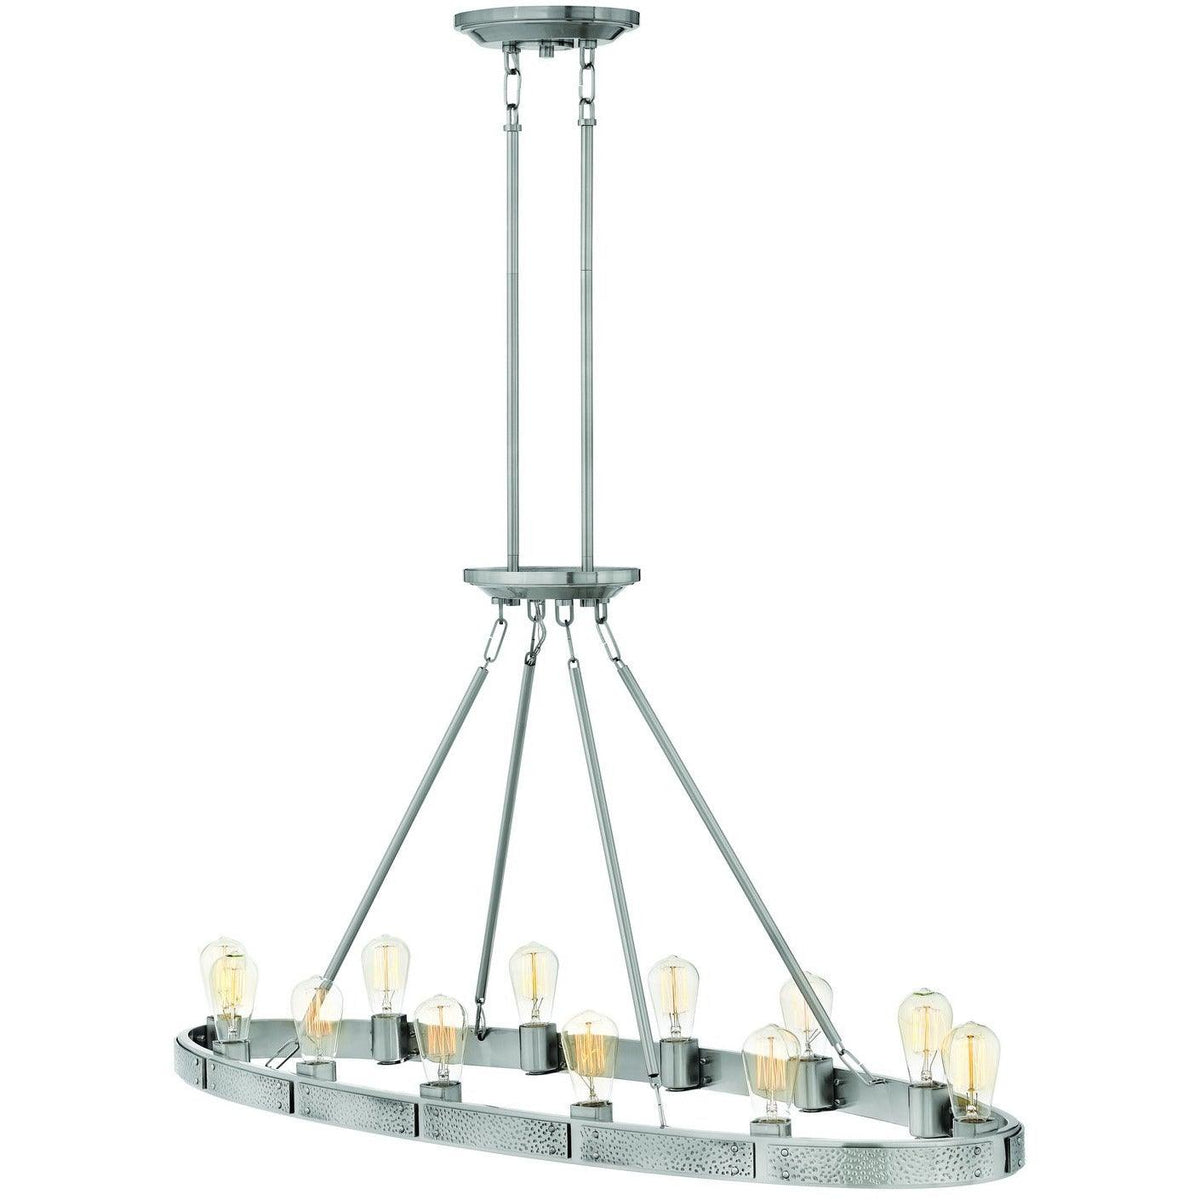 Hinkley Canada - 4396BN - 12 Light Linear Chandelier - Everett - Brushed Nickel